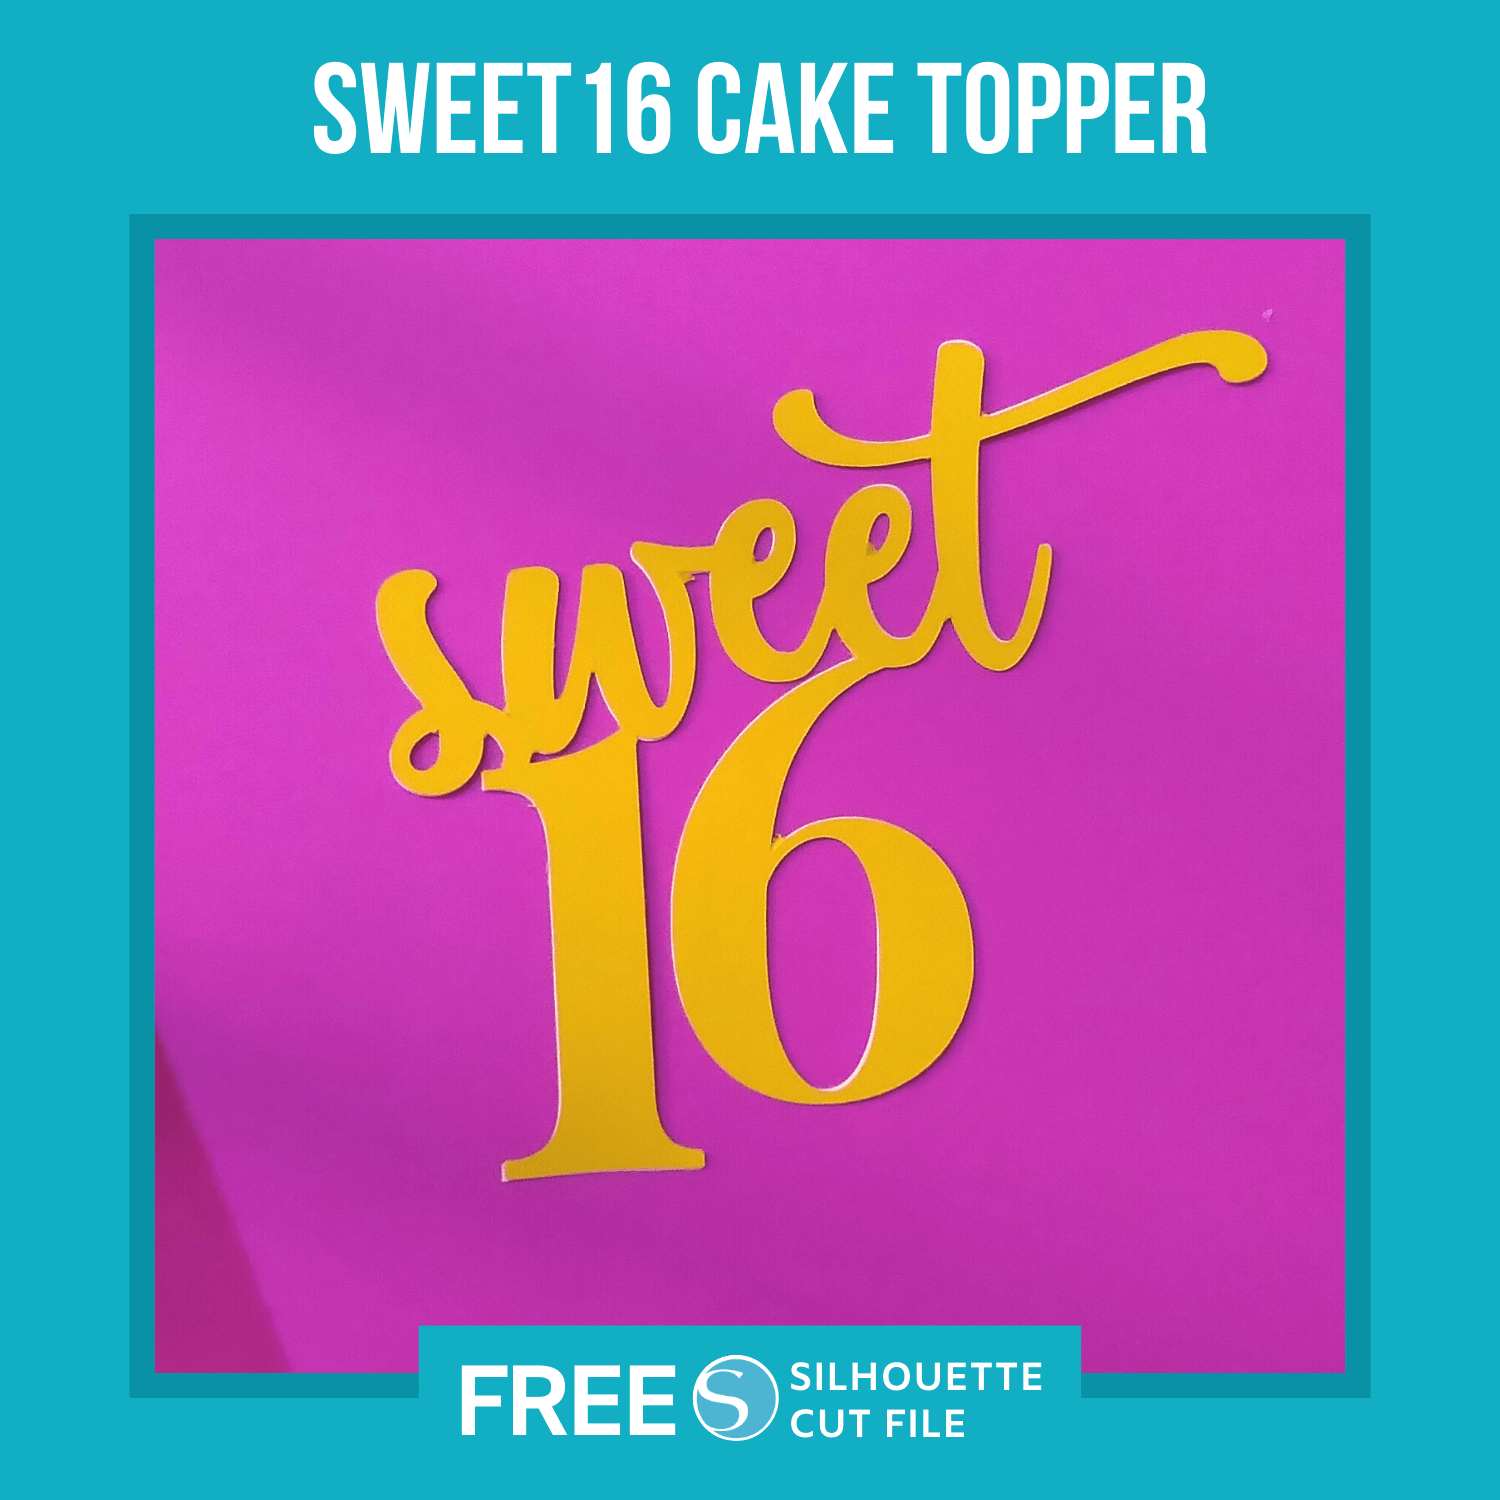 Sweet 16 Cake Topper Template